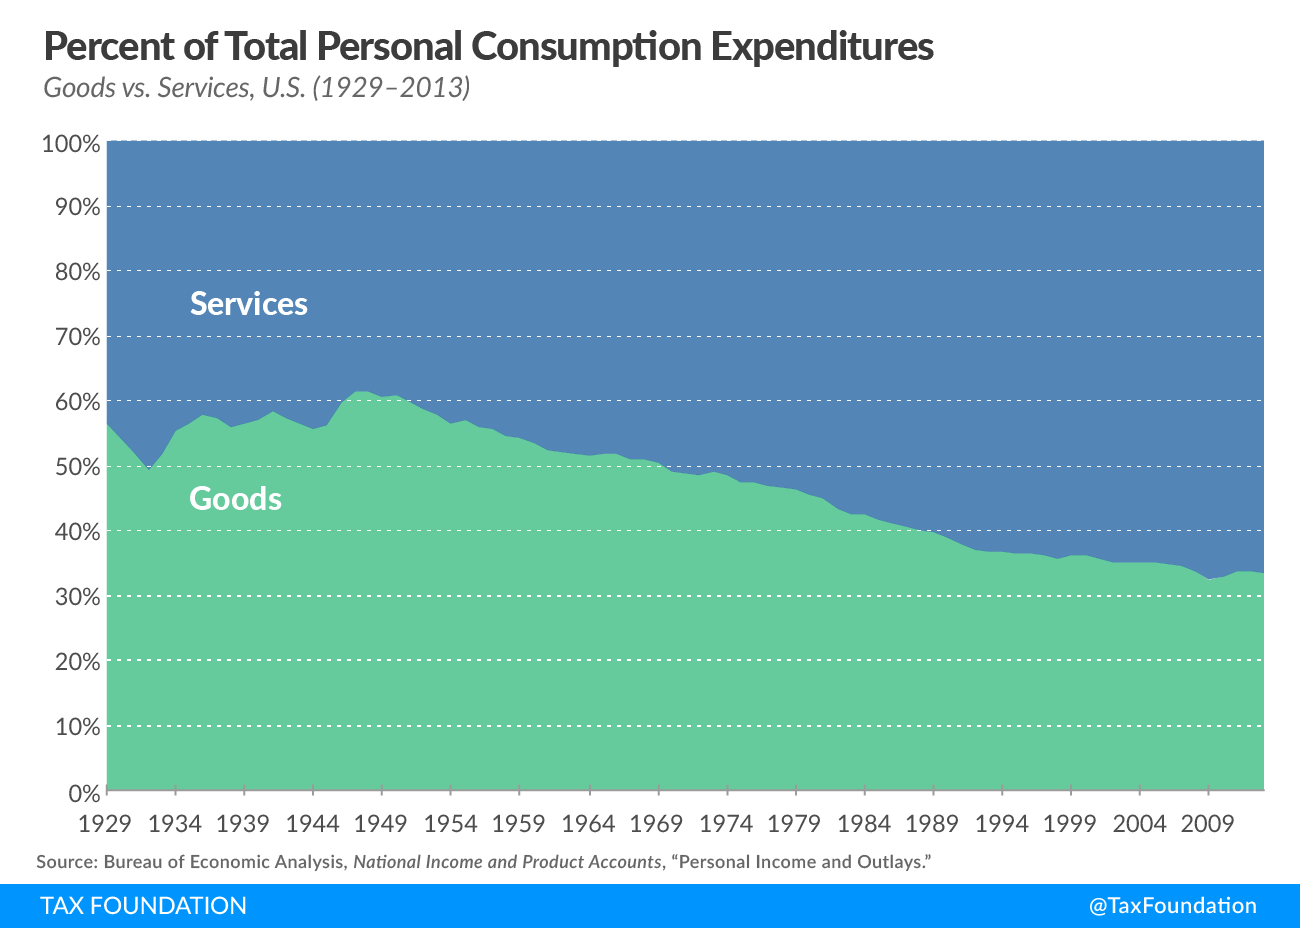 Percent of Total Personal Consumption Expenditures - Goods vs. Services